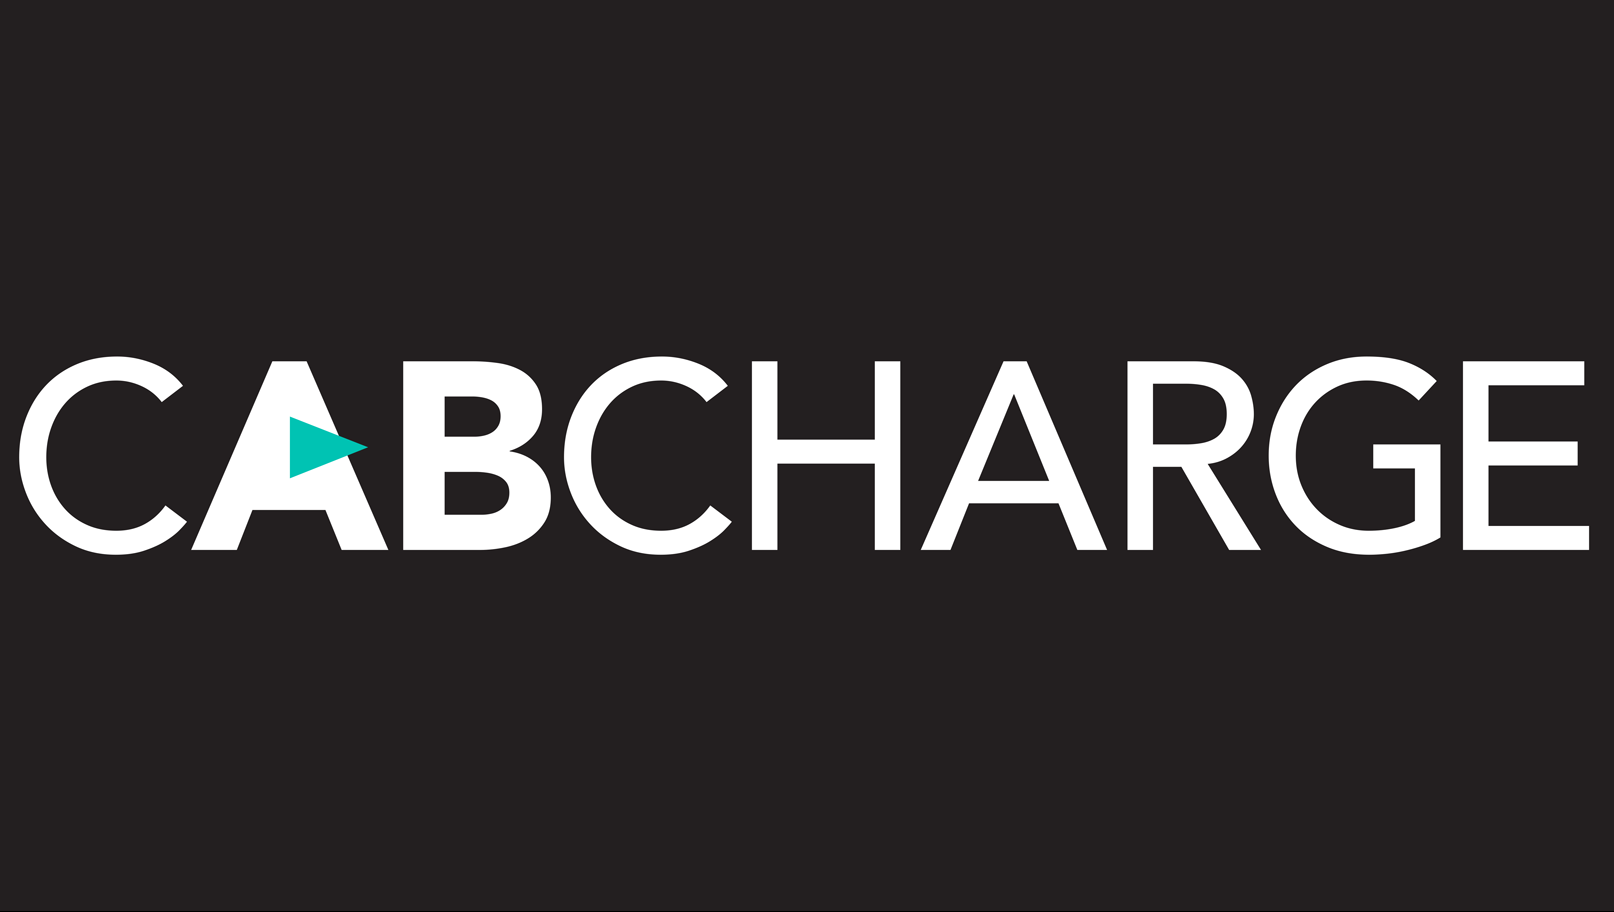 Cabcharge logo